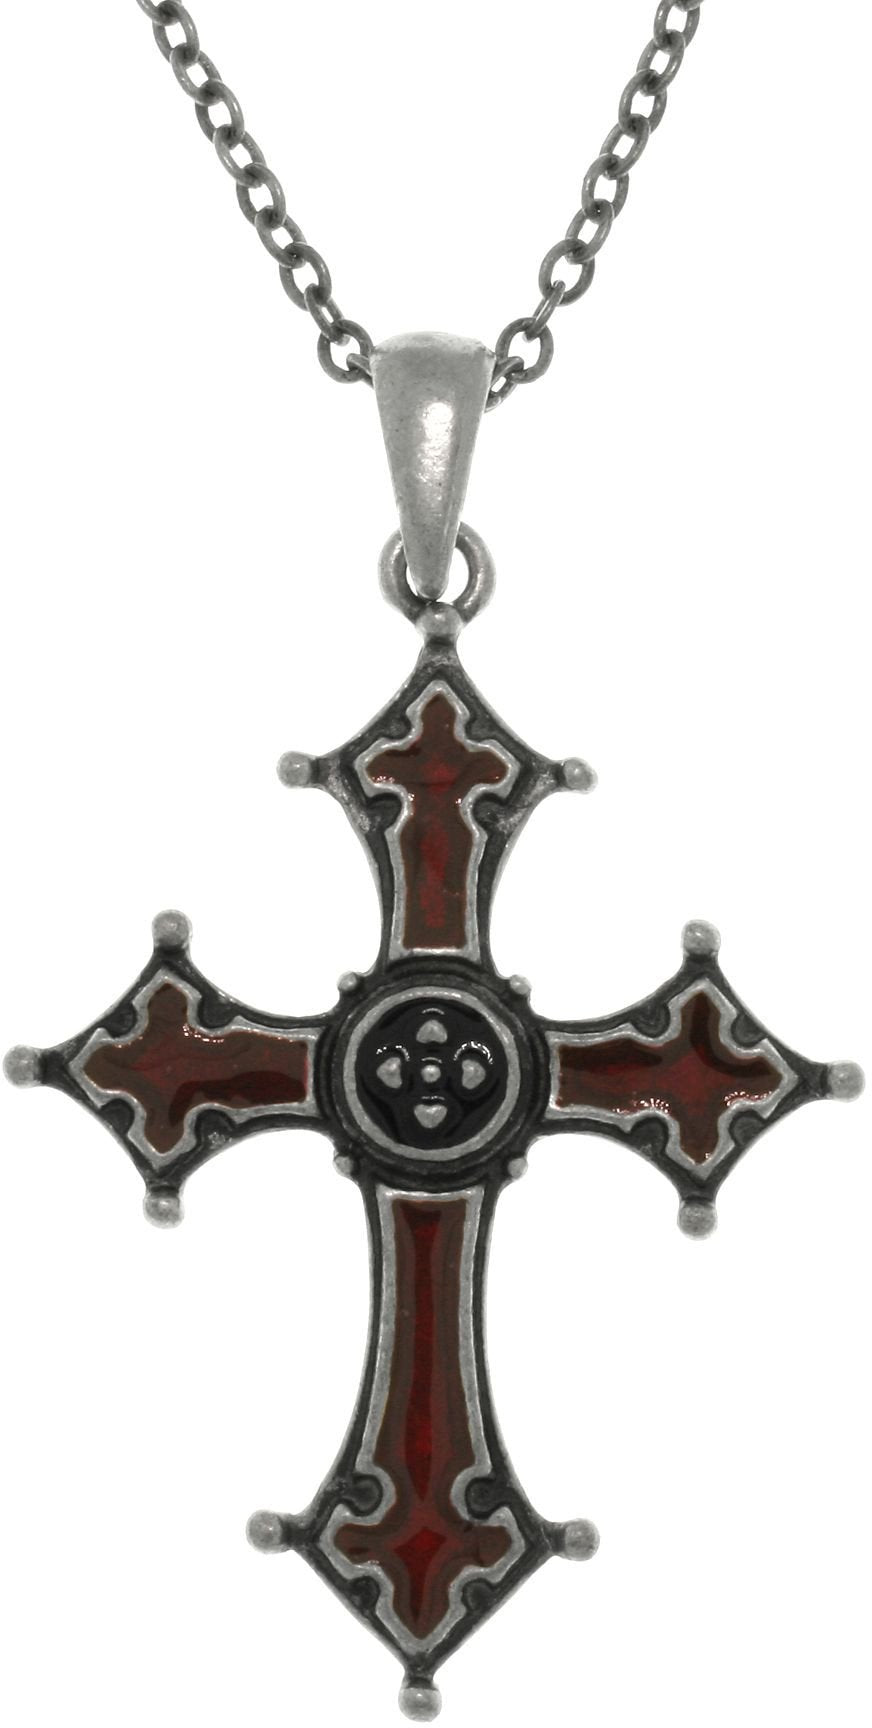 Jewelry Trends Pewter Gothic Byzantine Cross Pendant with Red Enamel on Chain Necklace